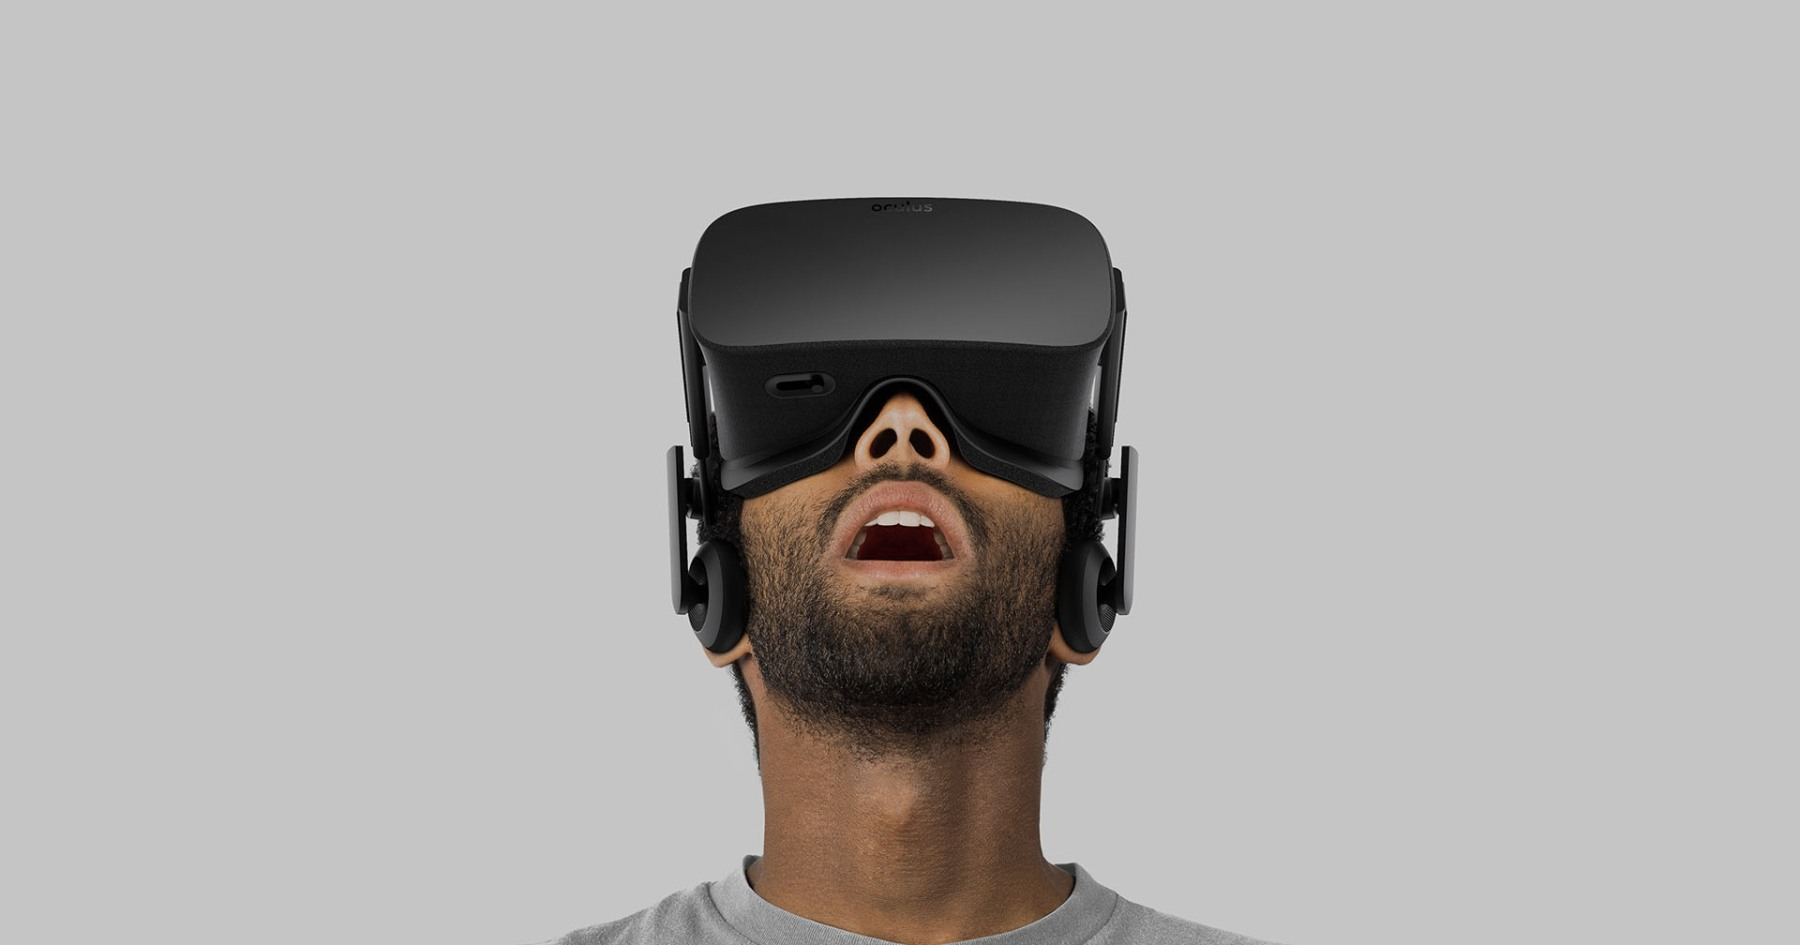 Win an Oculus Rift and a Fully-Compatible PC